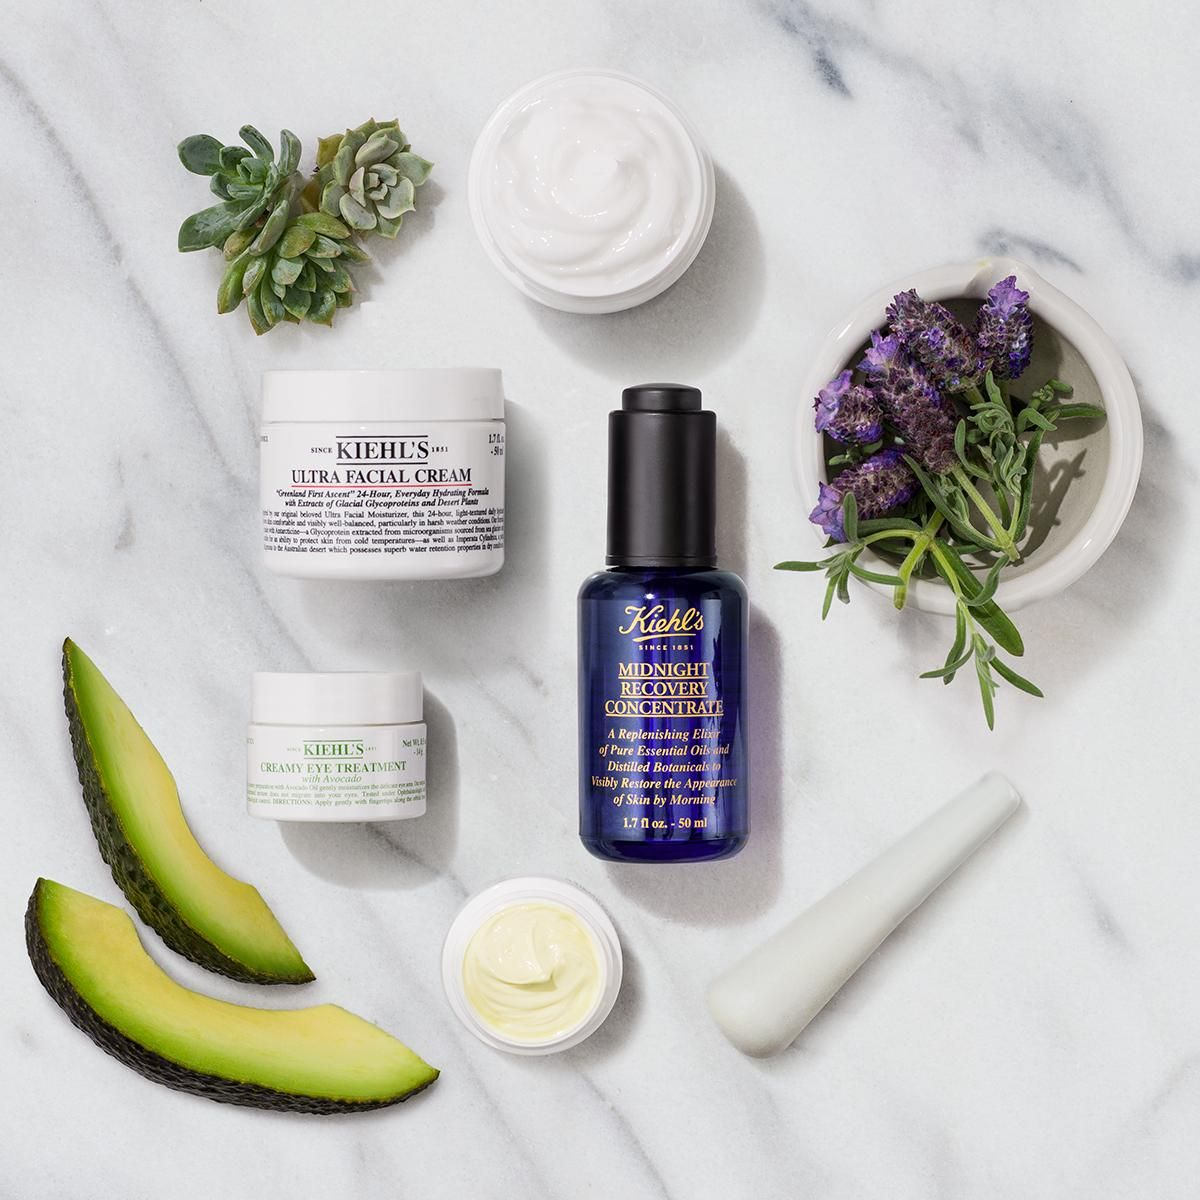 How do you get healthier skin? Start by adding these 3 skincare essentials to your routine. First, apply our Creamy Eye Treatment with Avocado to the under eye area. Packed with nourishing Avocado Oil, this eye cream provides skin with deep hydration. Next, apply 1-2 drops of our Midnight Recovery Concentrate, a blend of essential oils that improve skin overnight. Finally, lock in hydration with our best-selling moisturizer: Ultra Facial Cream.